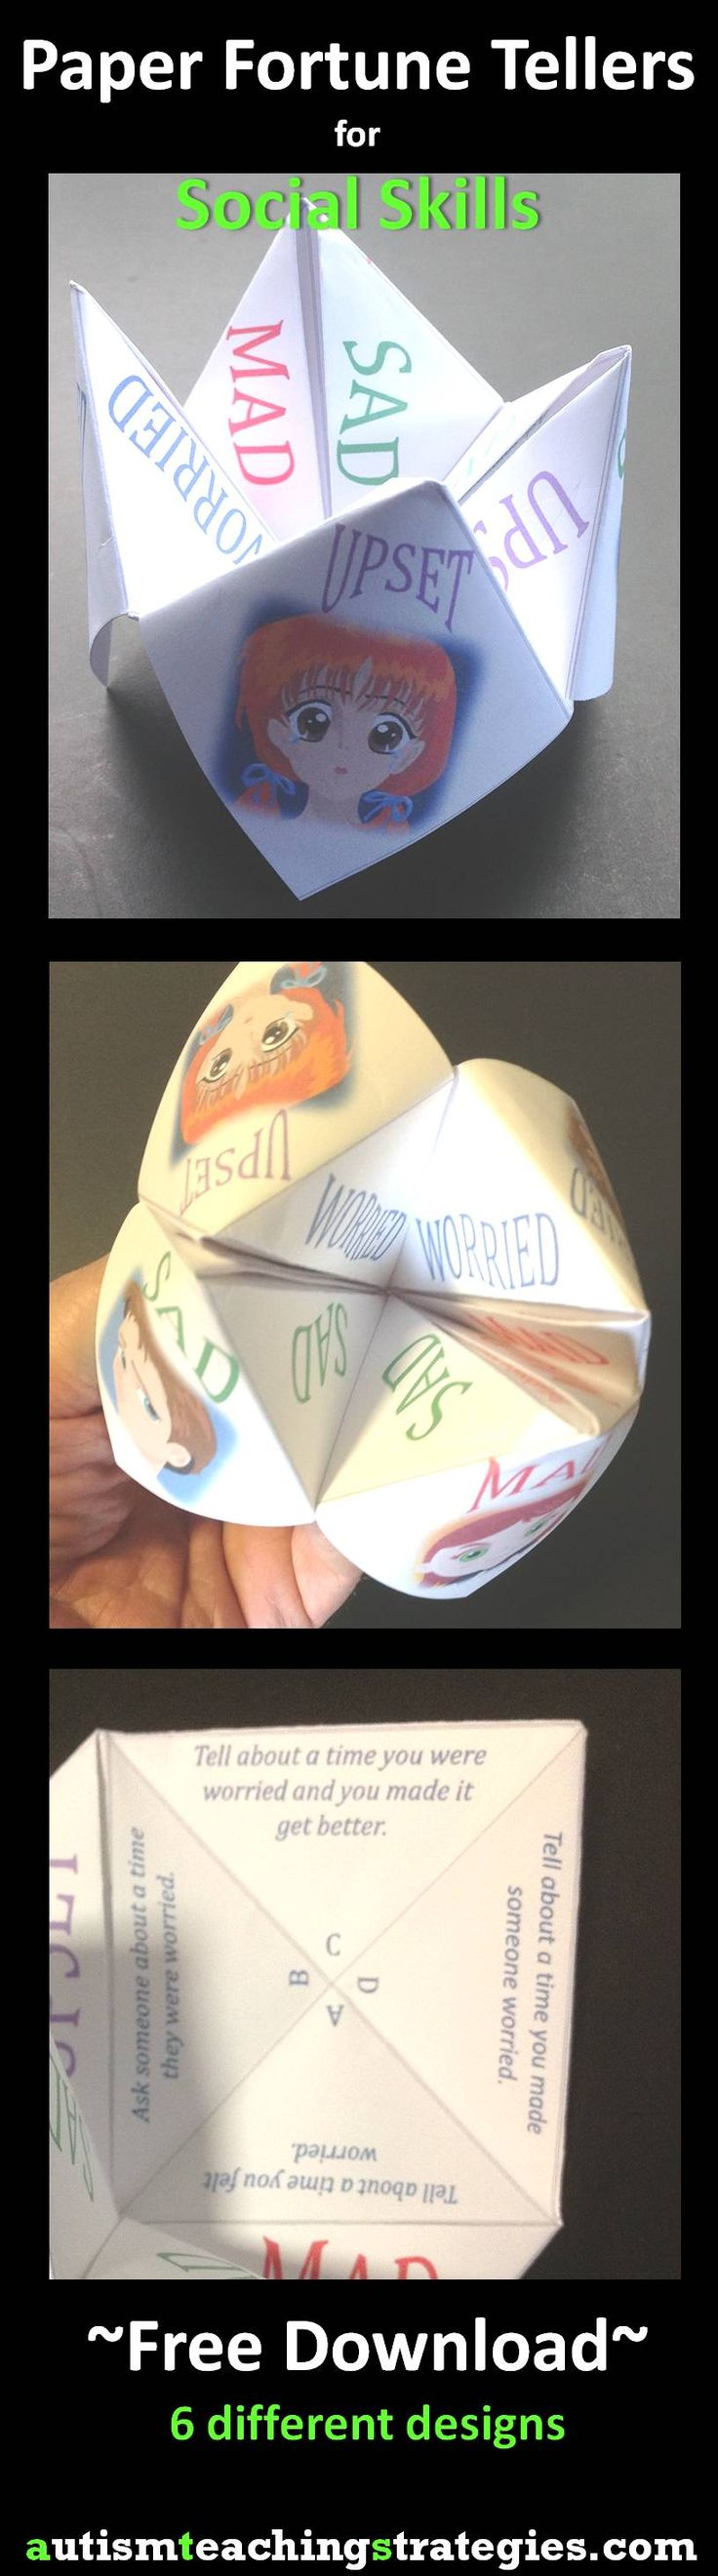 must see problem solving activities pins impulse control another paper fortune teller this one for facilitating conversation and problem solving about